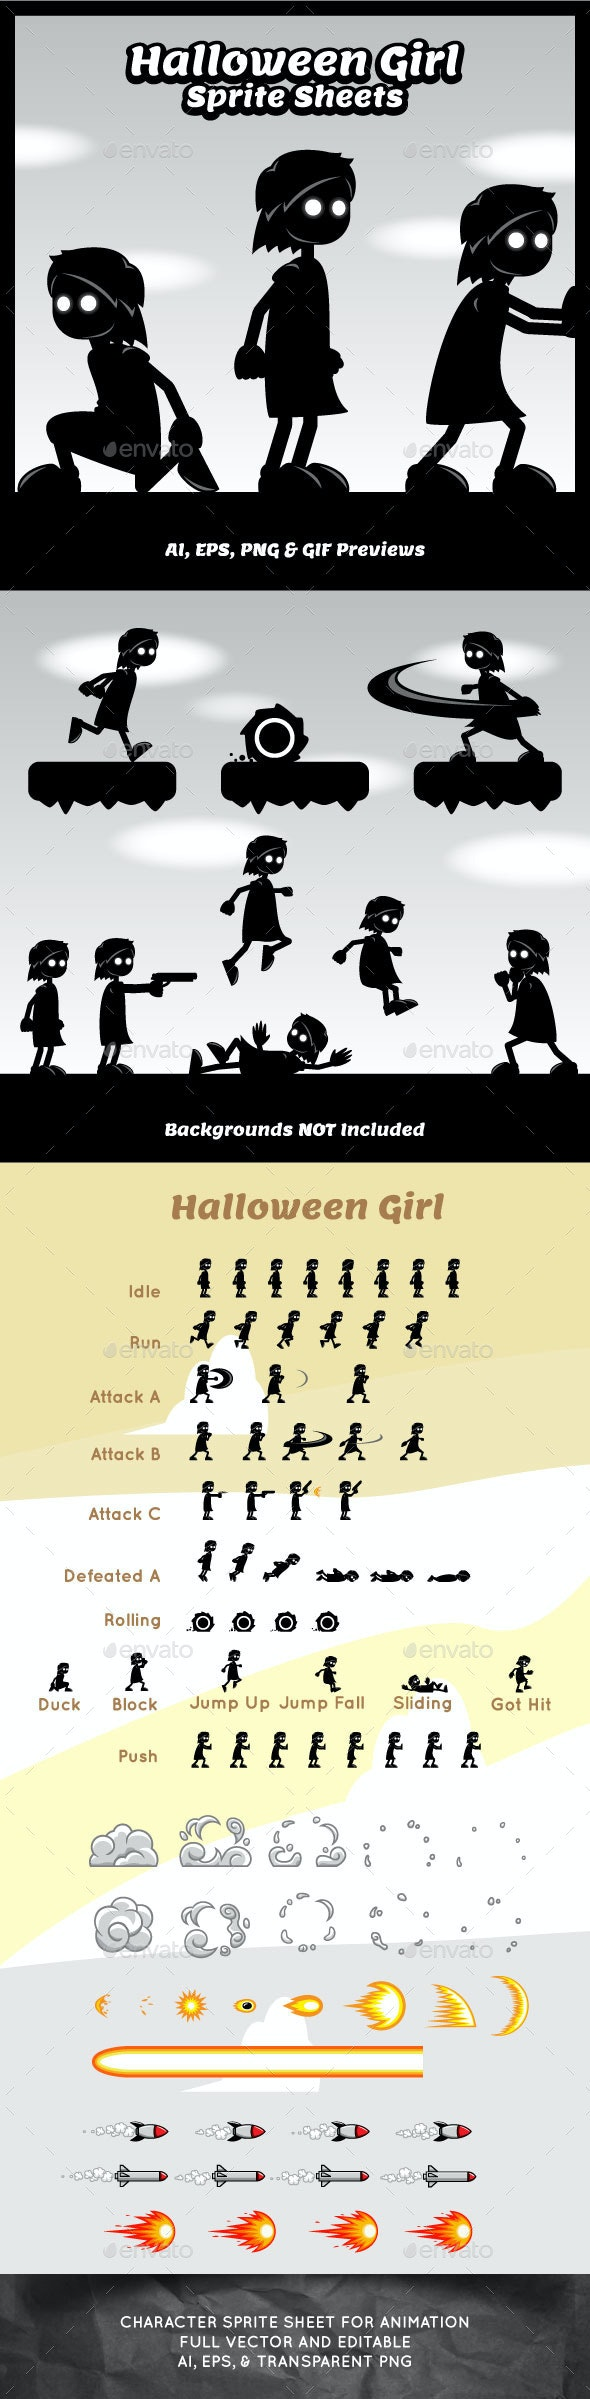 Halloween Girl Game Character Sprite Sheets - Sprites Game Assets